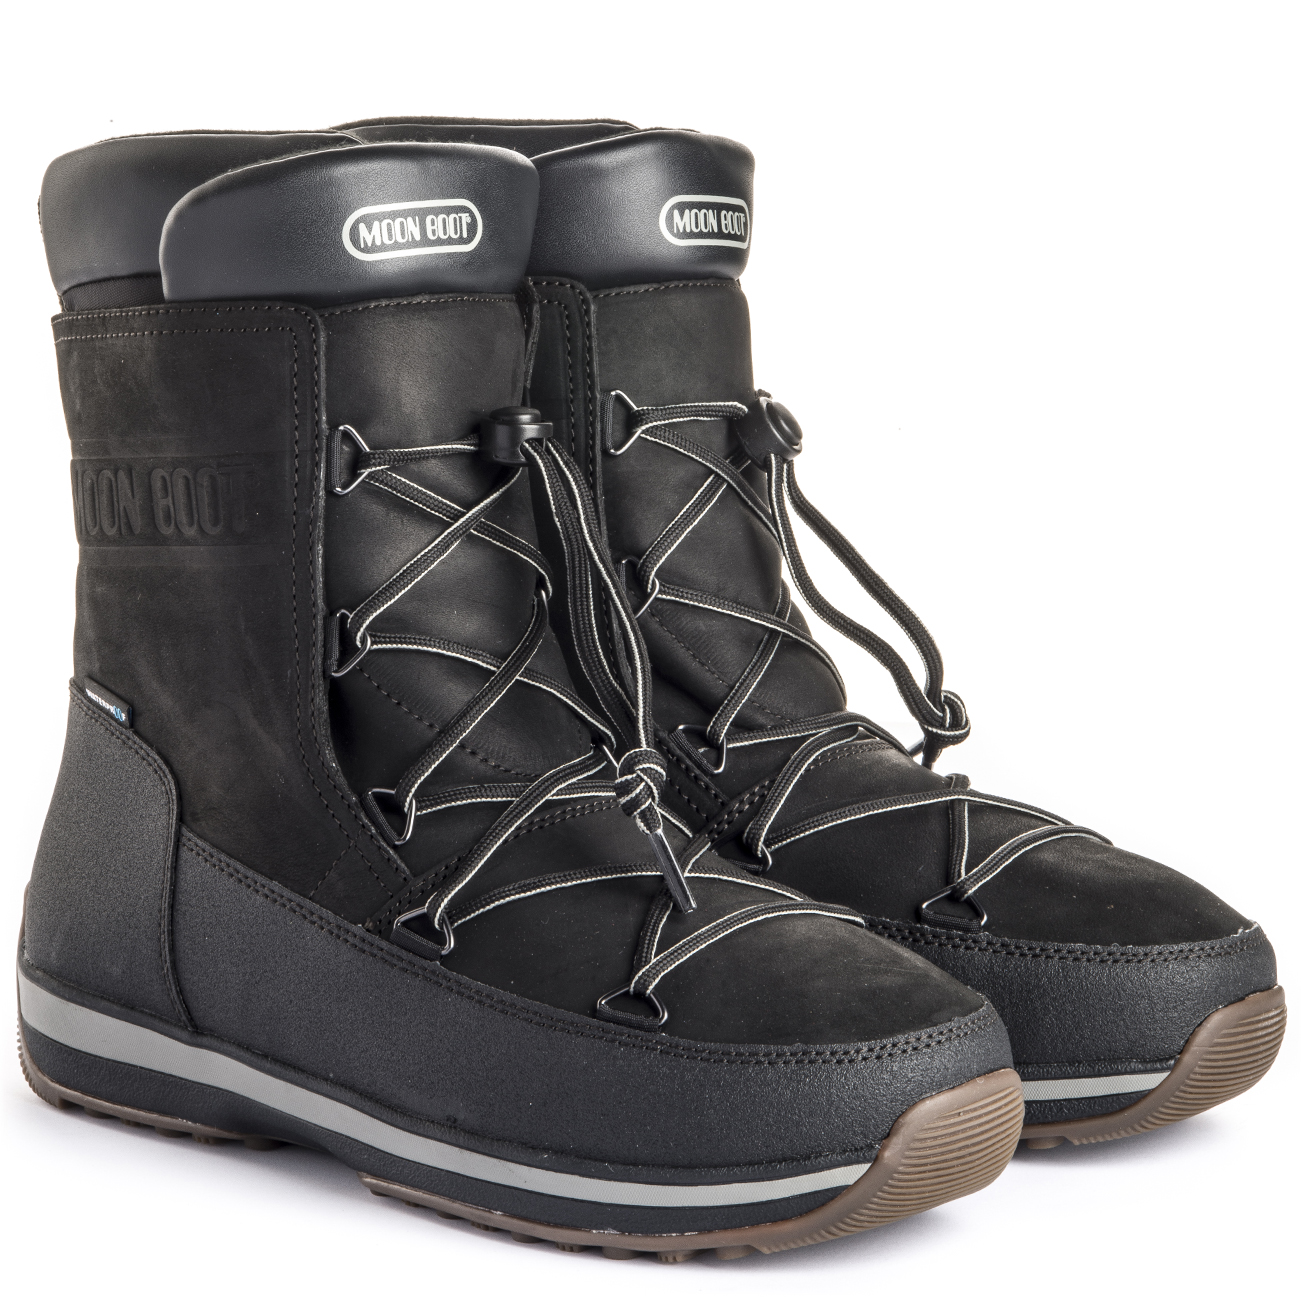 Tecnica Moon Boot Lem Leather